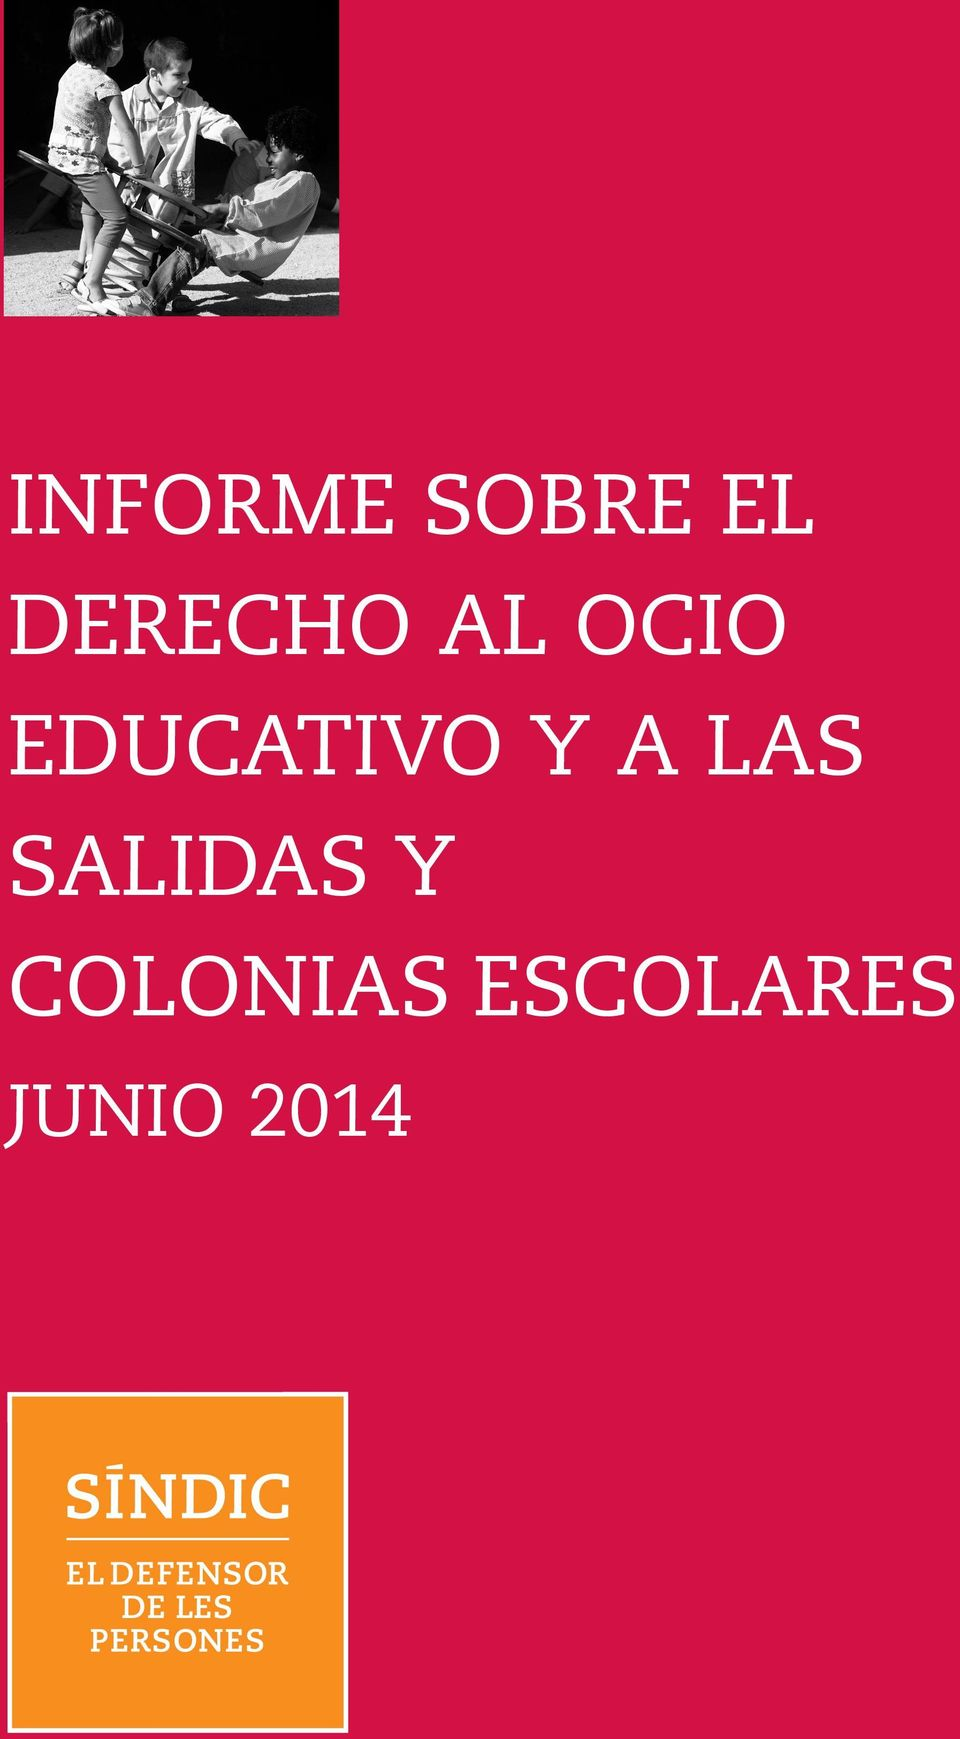 EDUCATIVO Y A LAS